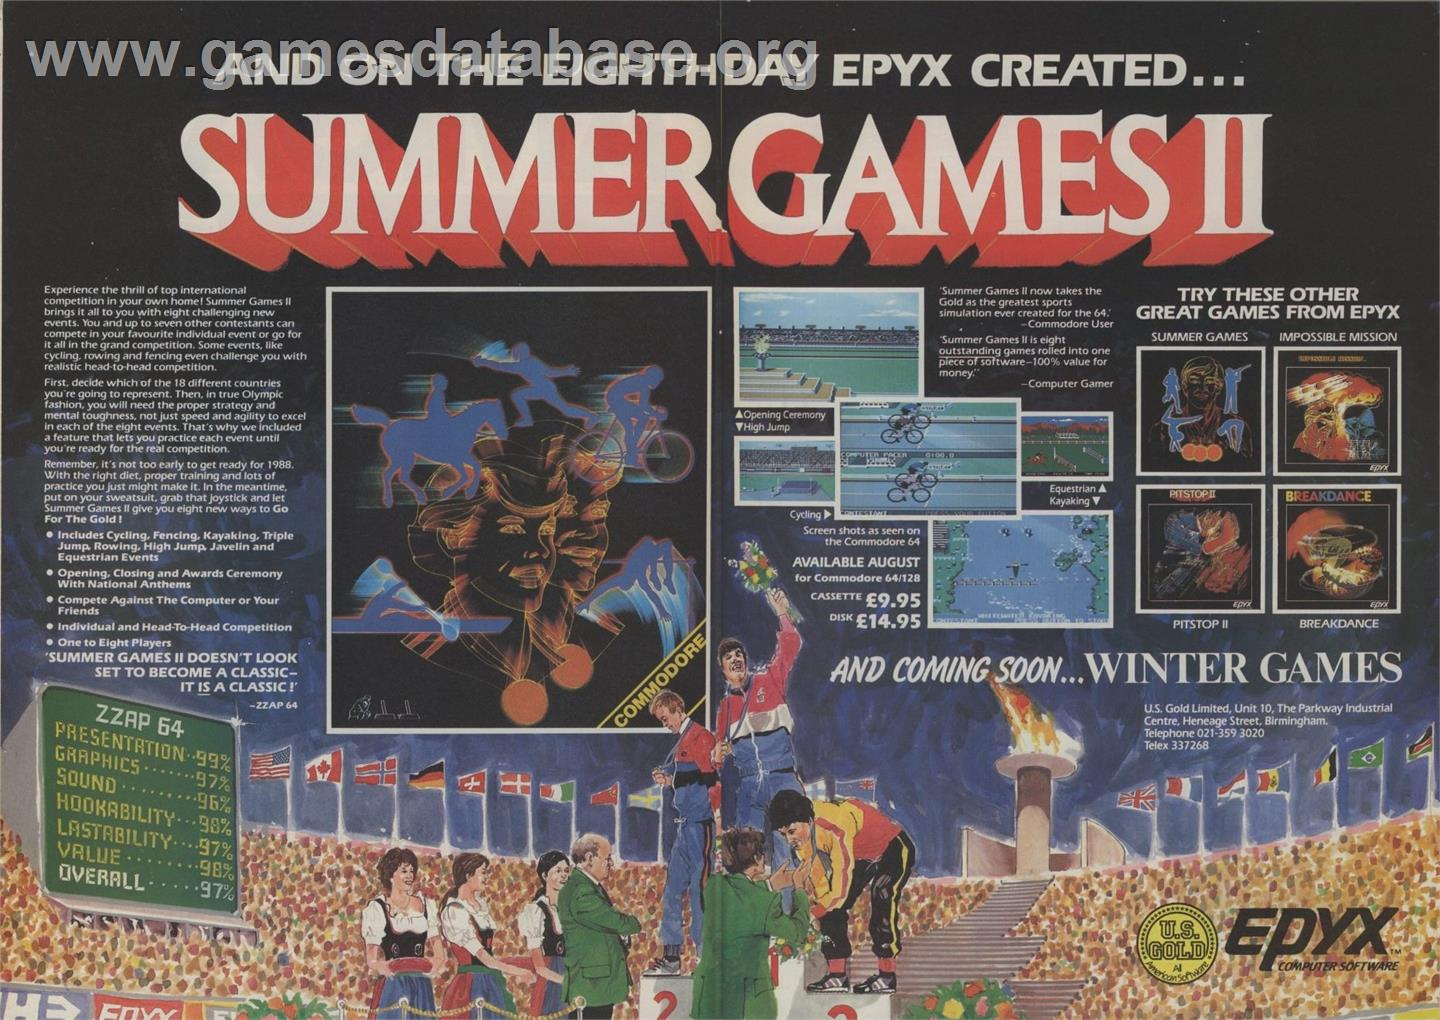 Summer Games - Atari 8-bit - Artwork - Advert